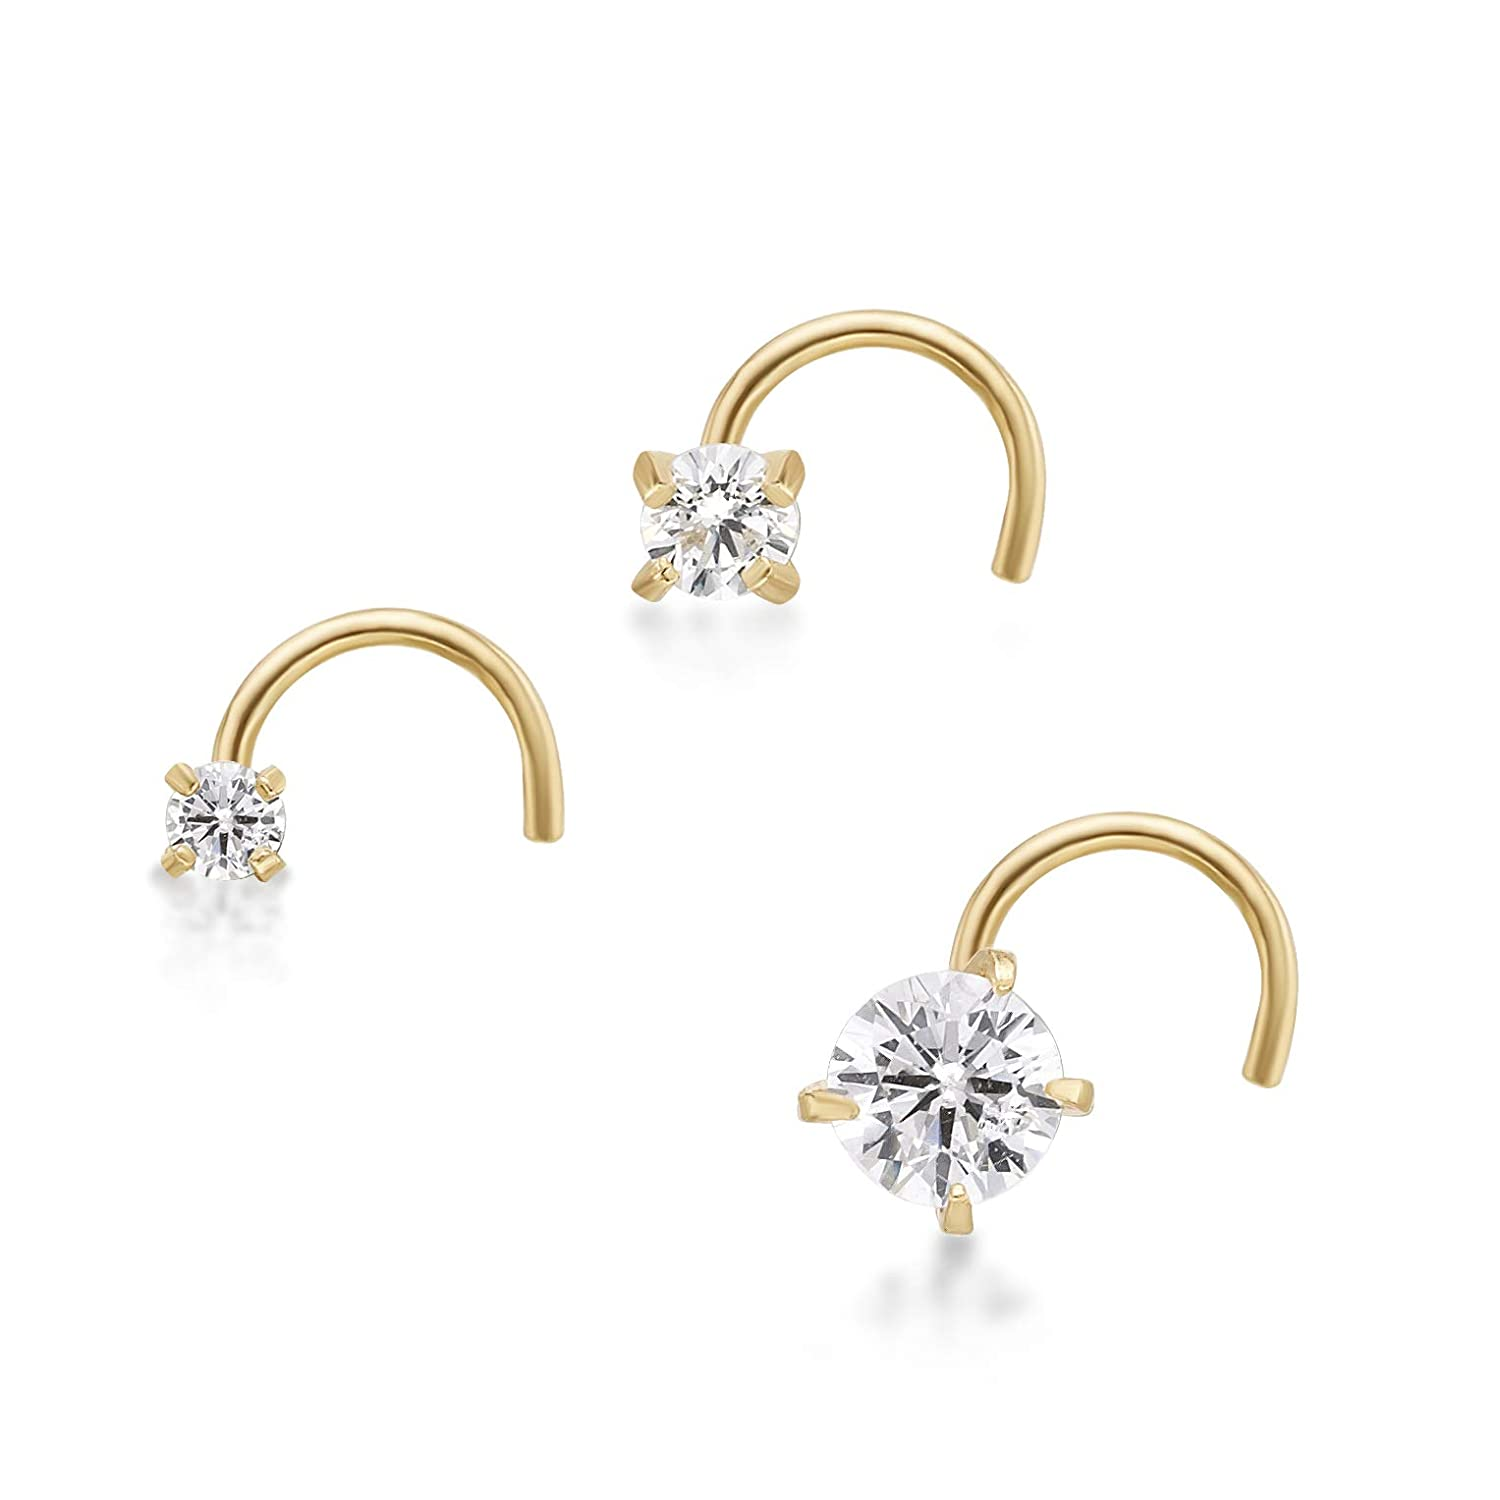 Lavari 14K Yellow Gold 3 Pc White Cubic Zirconium Nose Ring Set